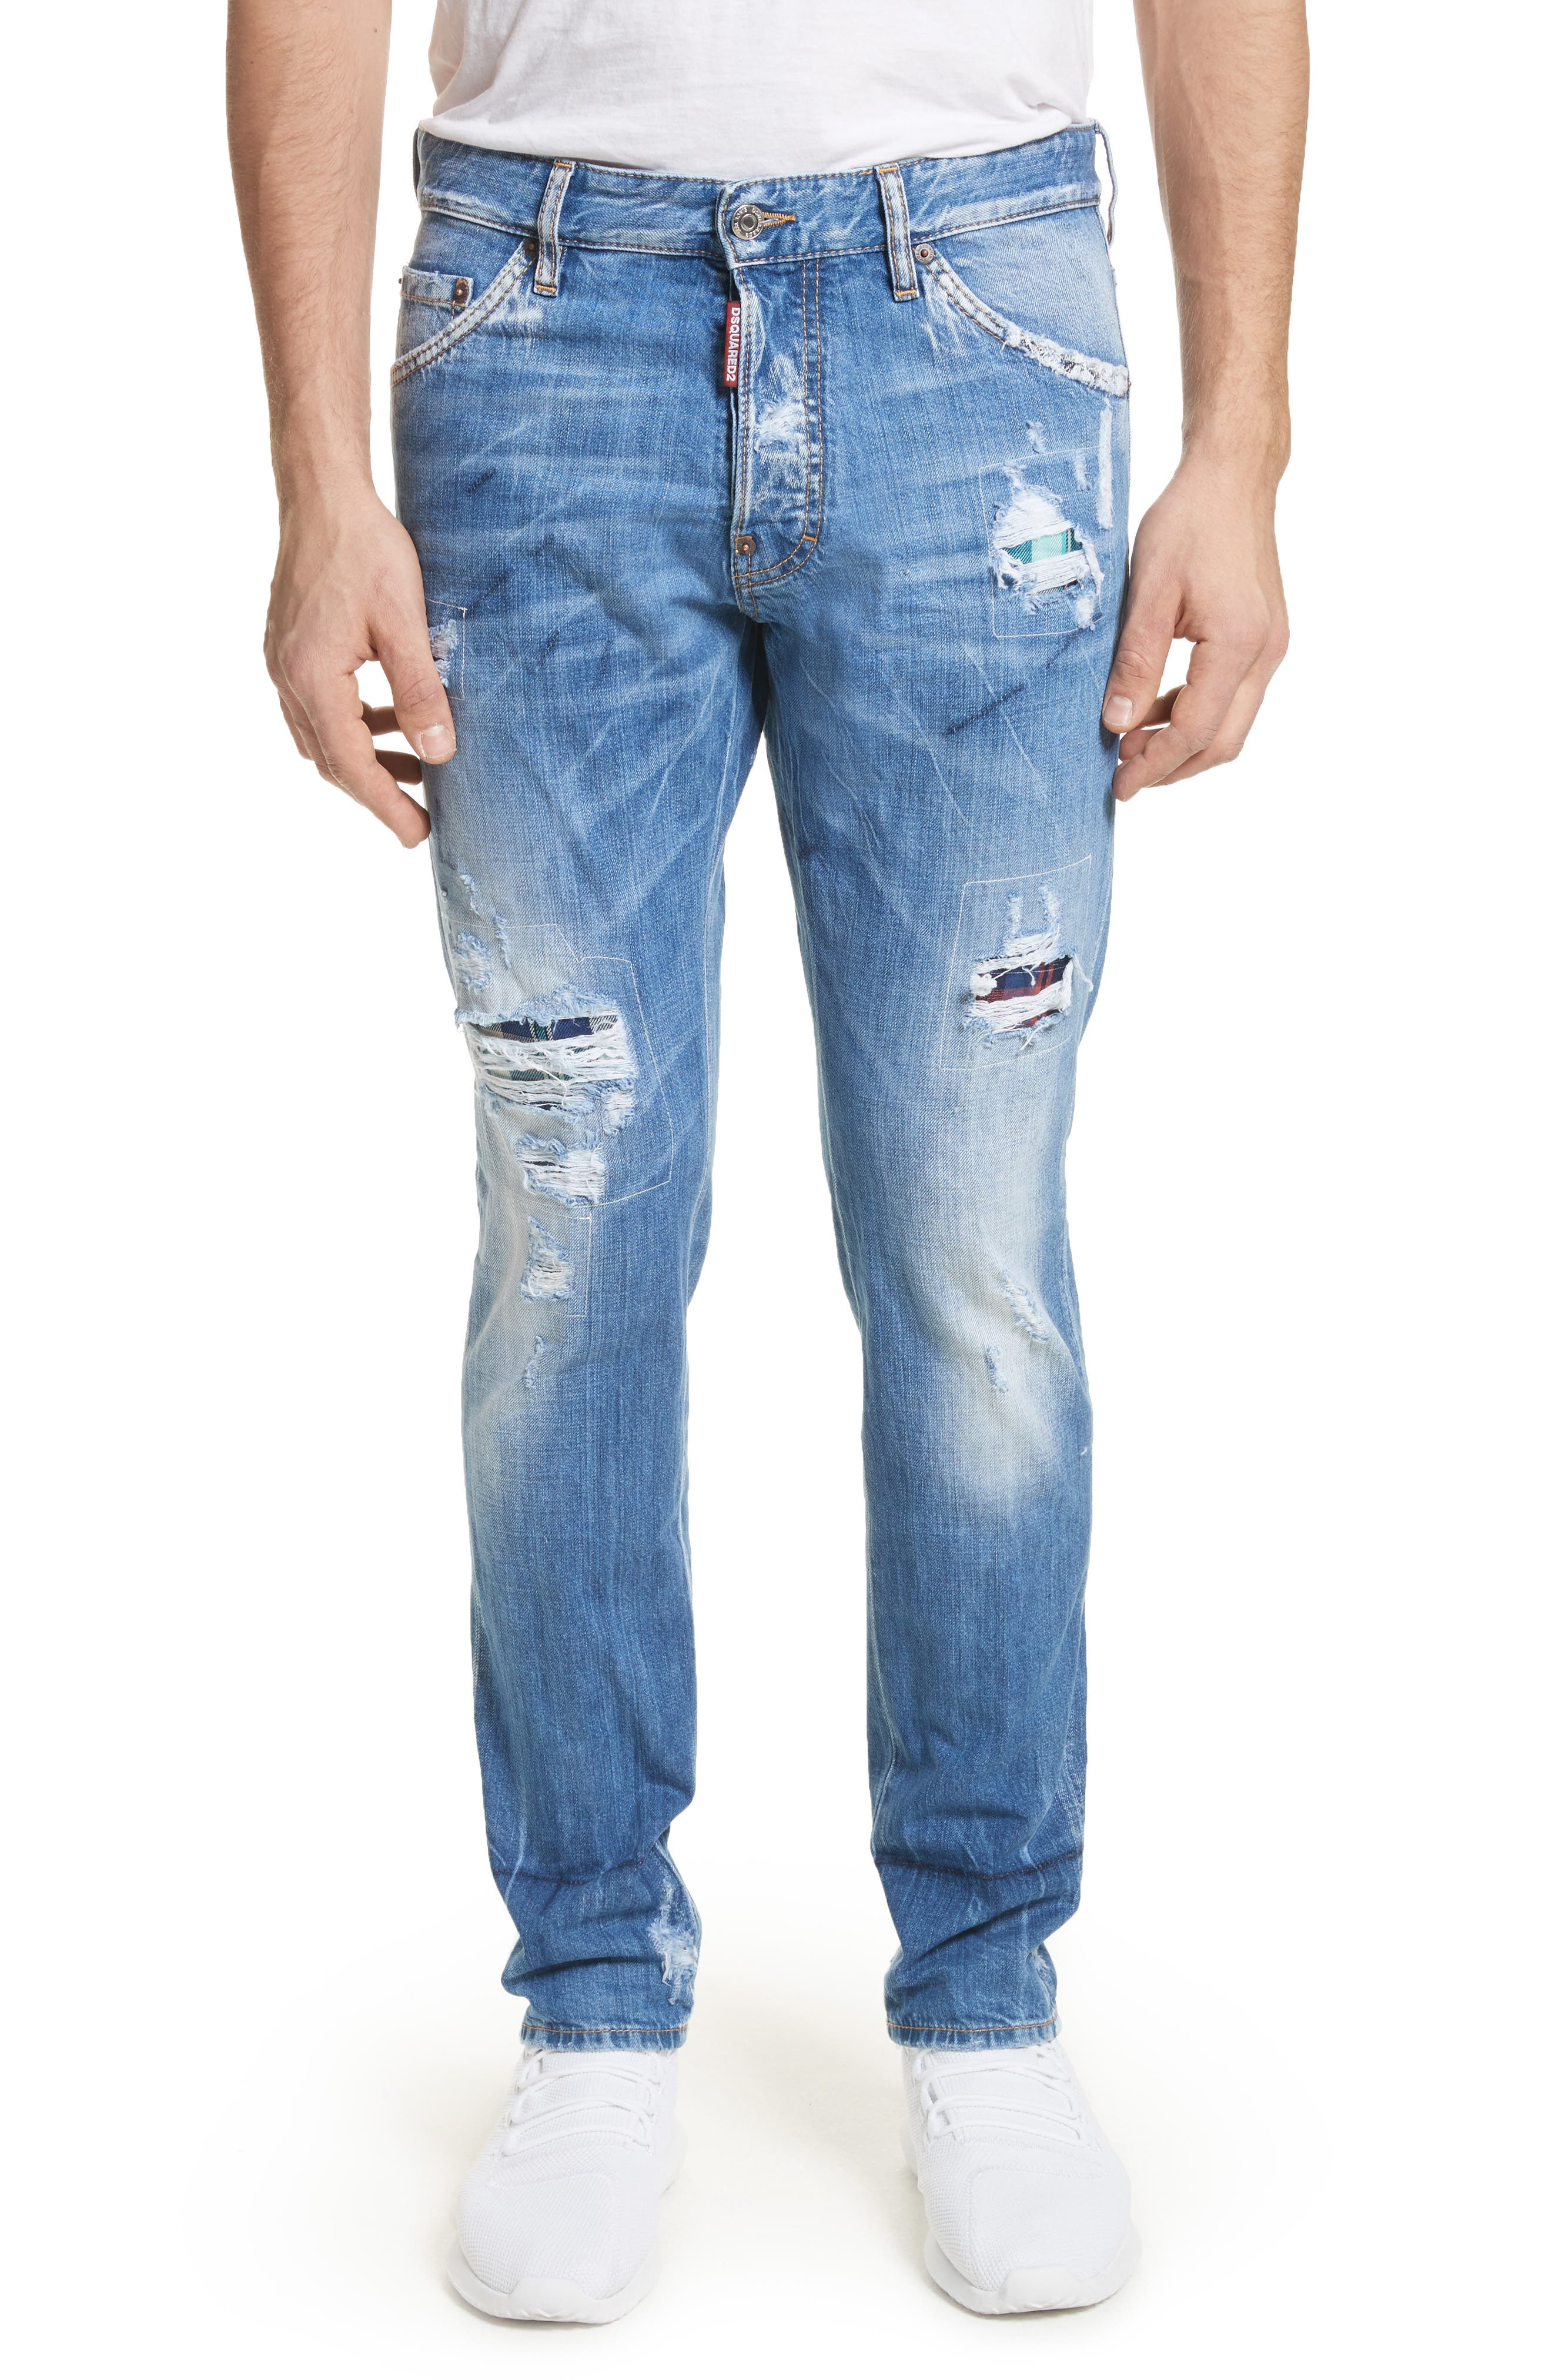 Cool Guy Skinny Fit Jeans,                         Main,                         color, 414